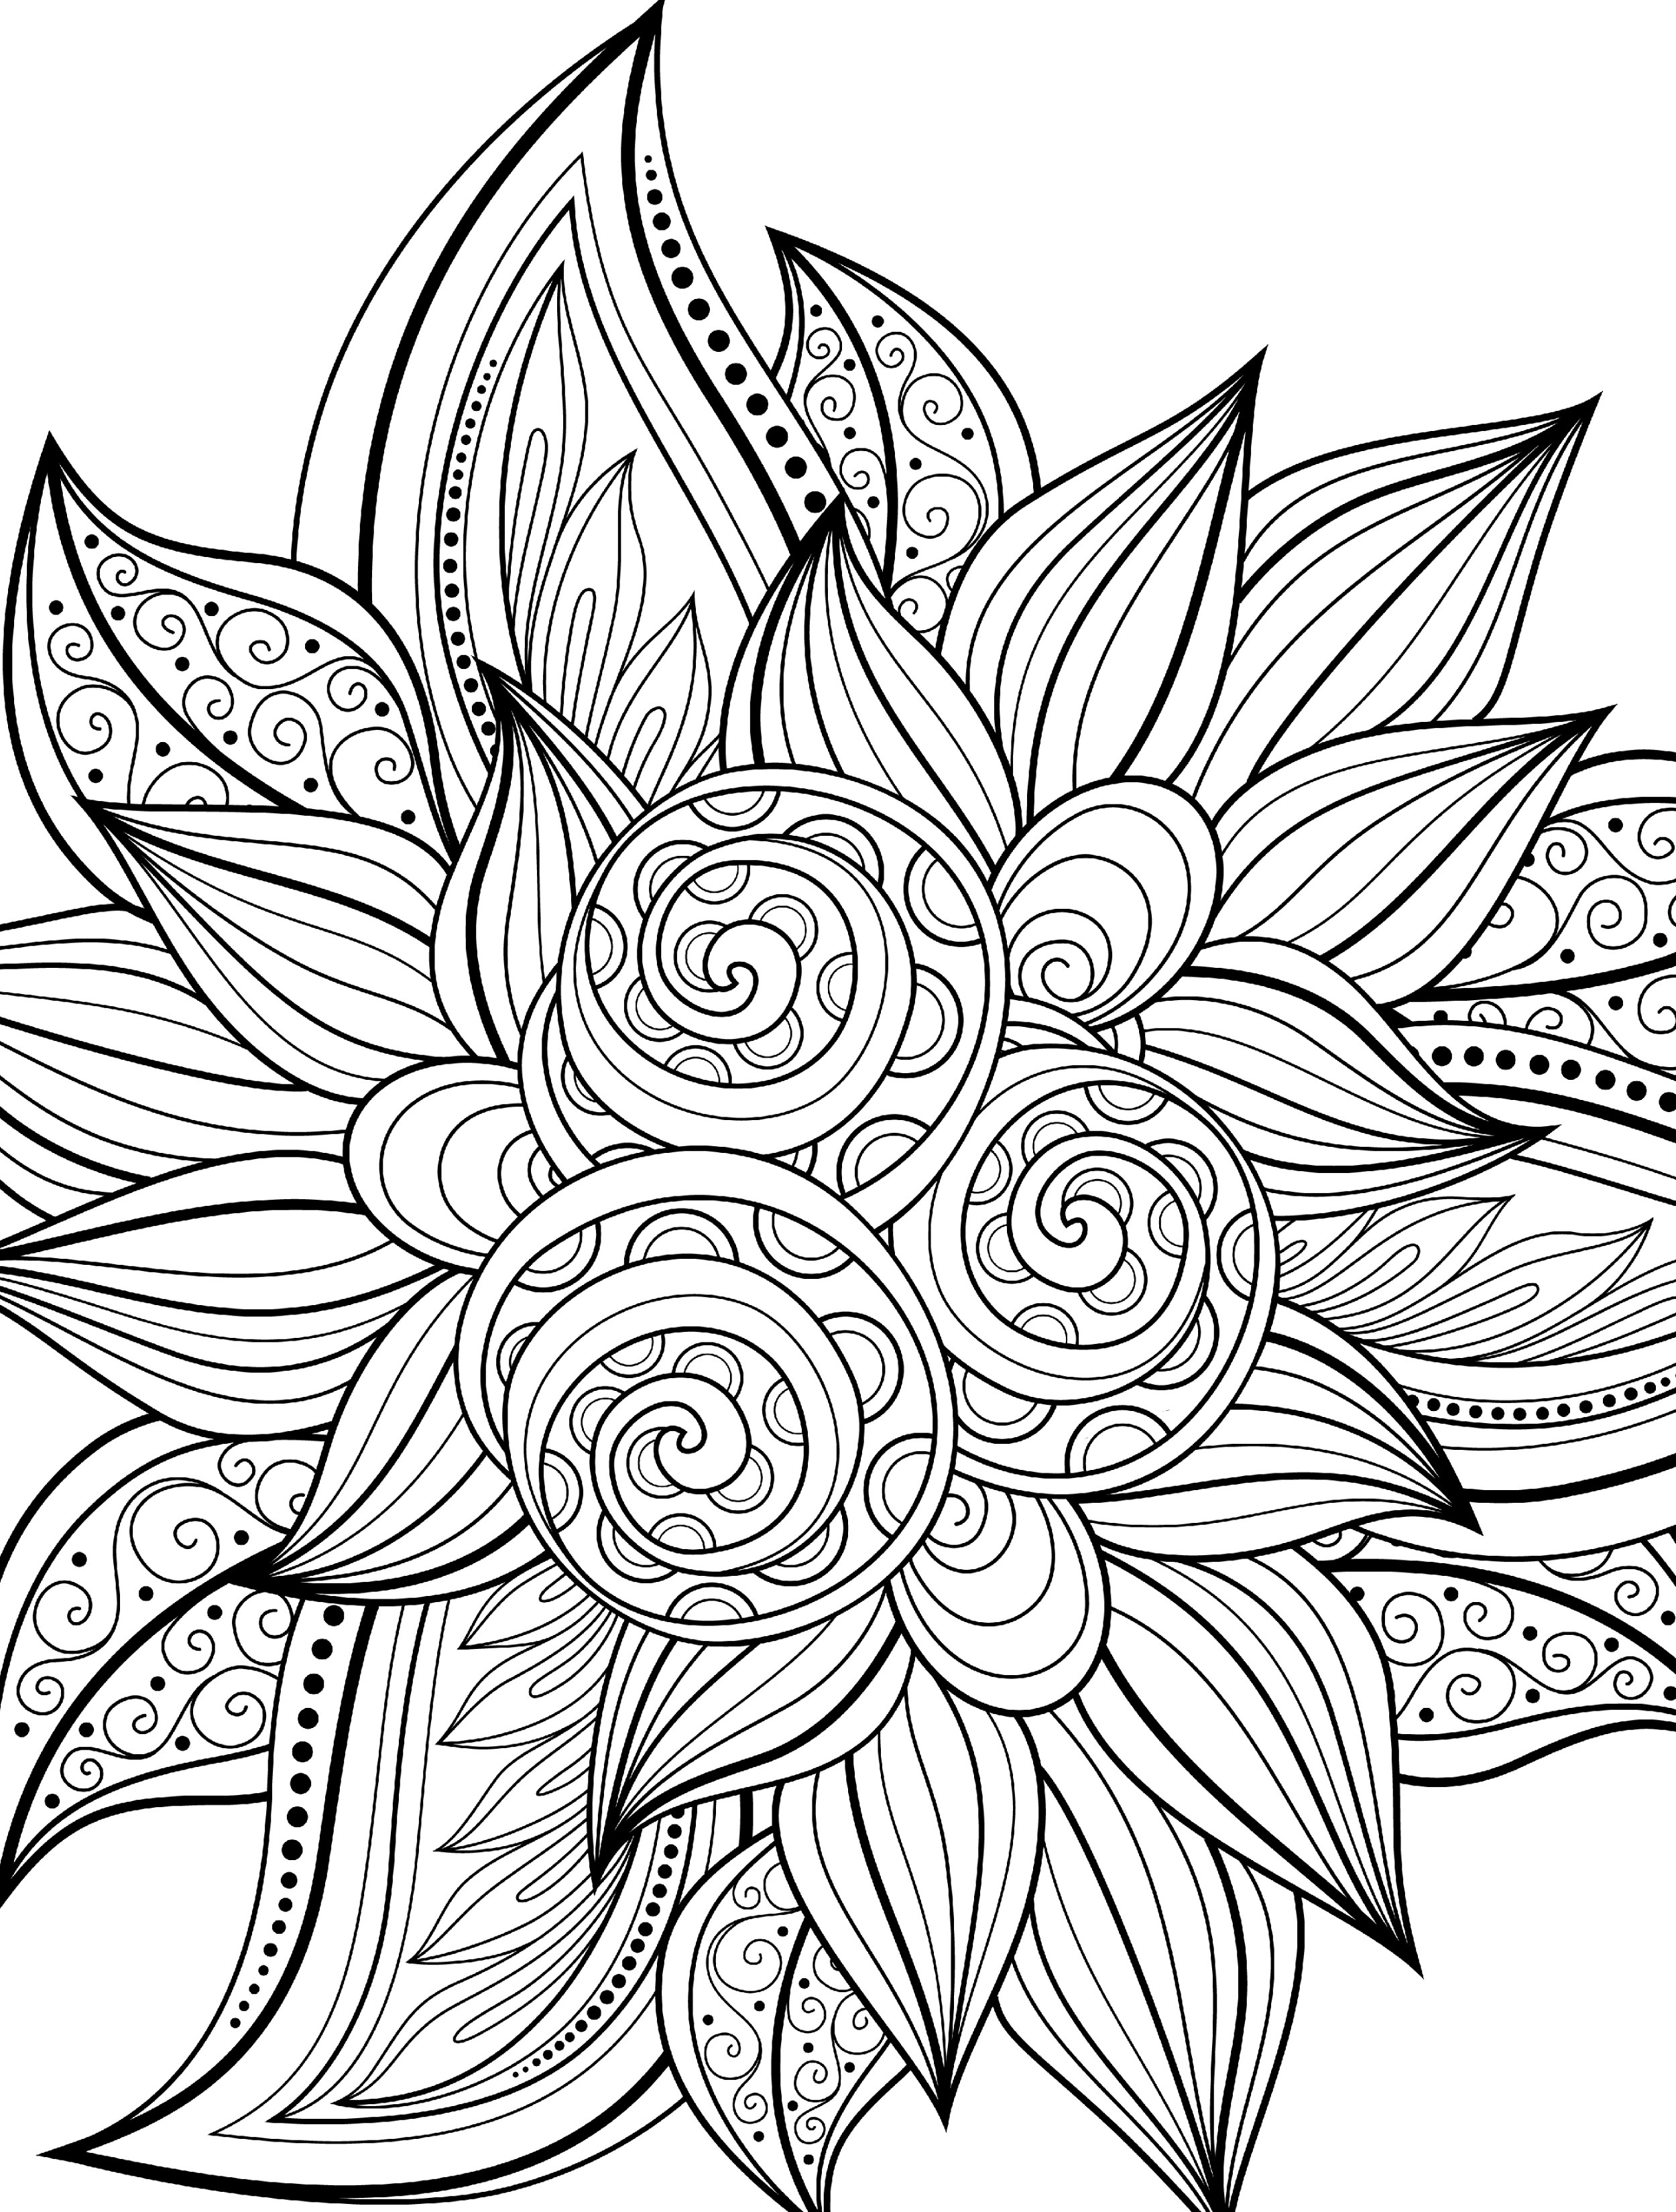 10 Free Printable Holiday Adult Coloring Pages - Free Printable Coloring Pages